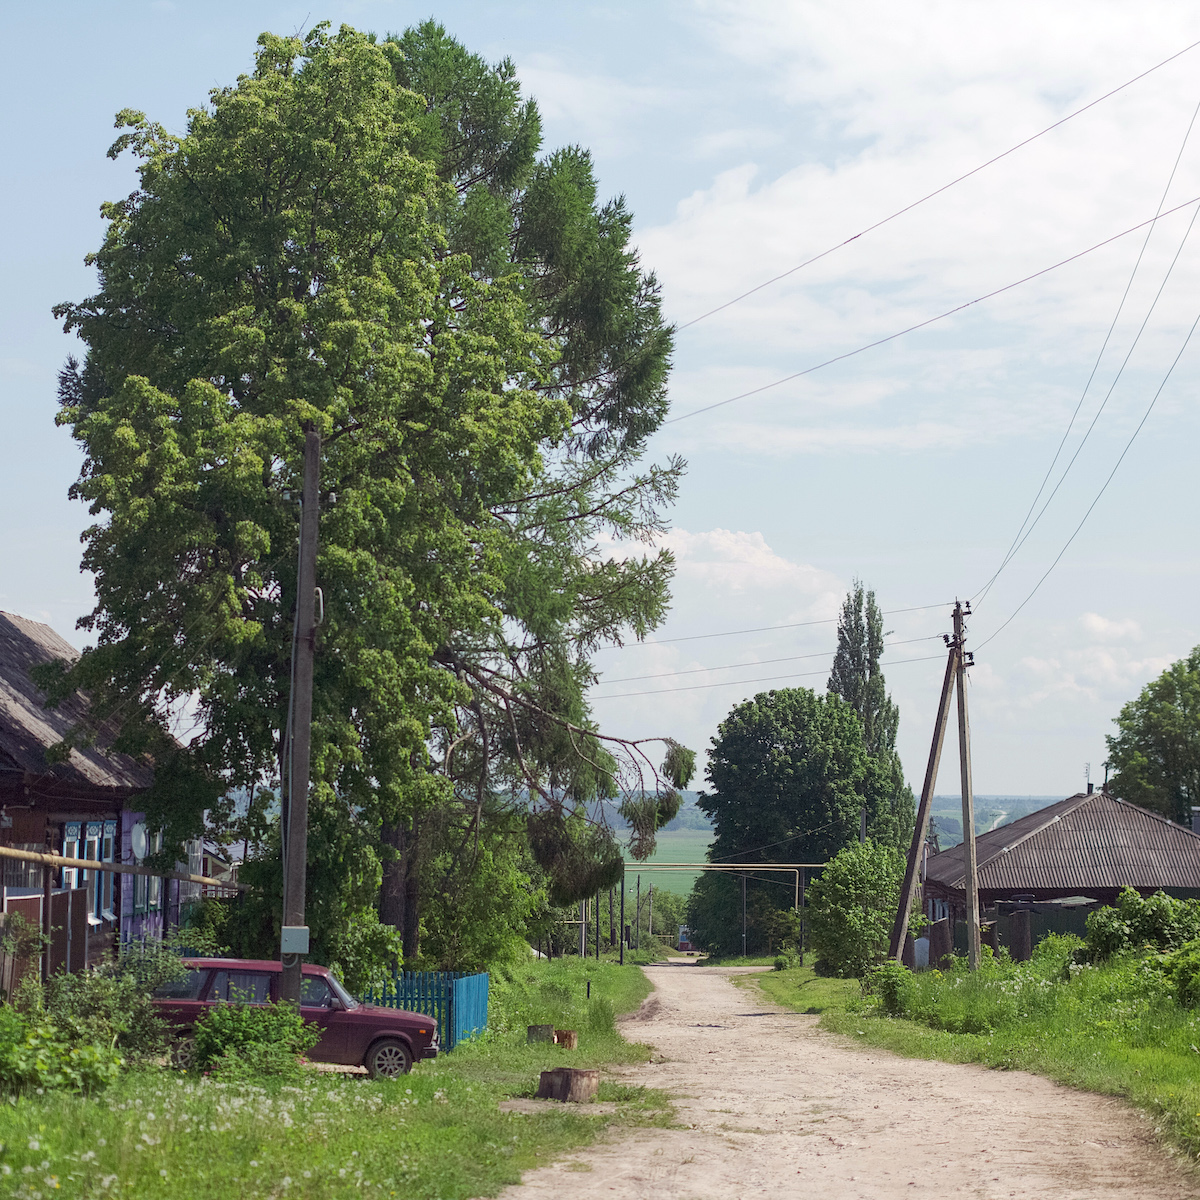 A typical street in Chekalin